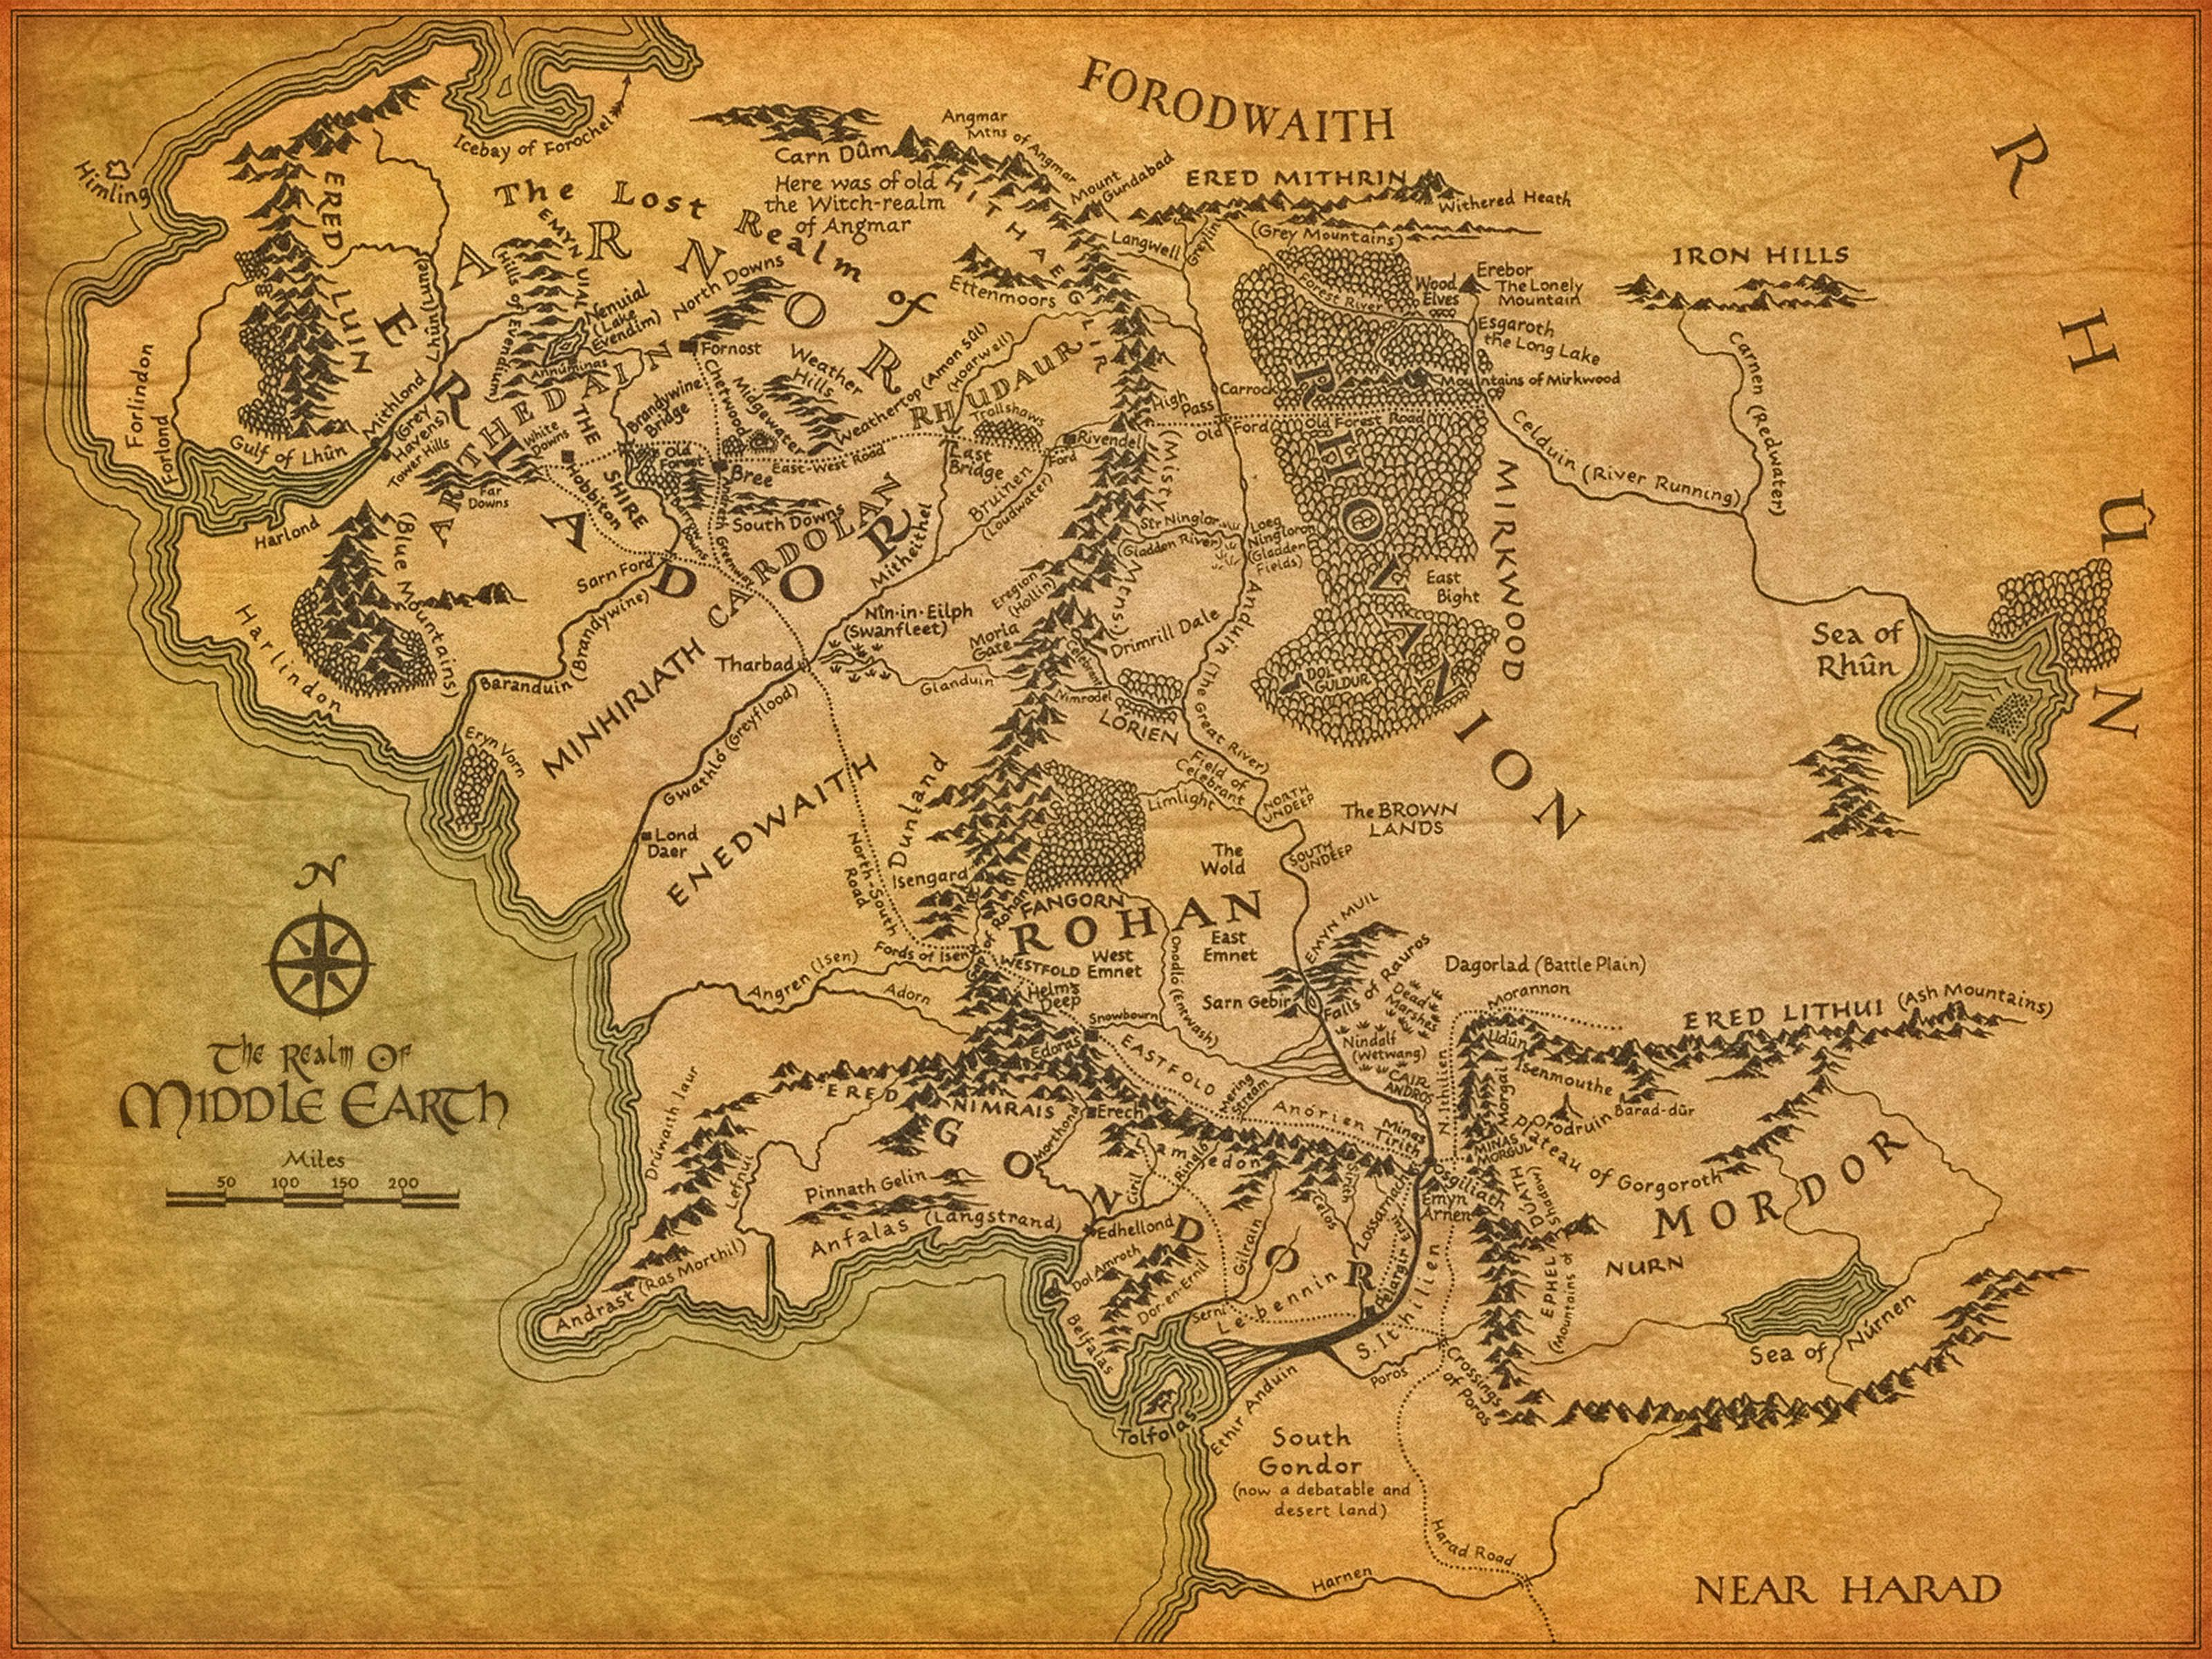 Map of Middle Earth from Lord of